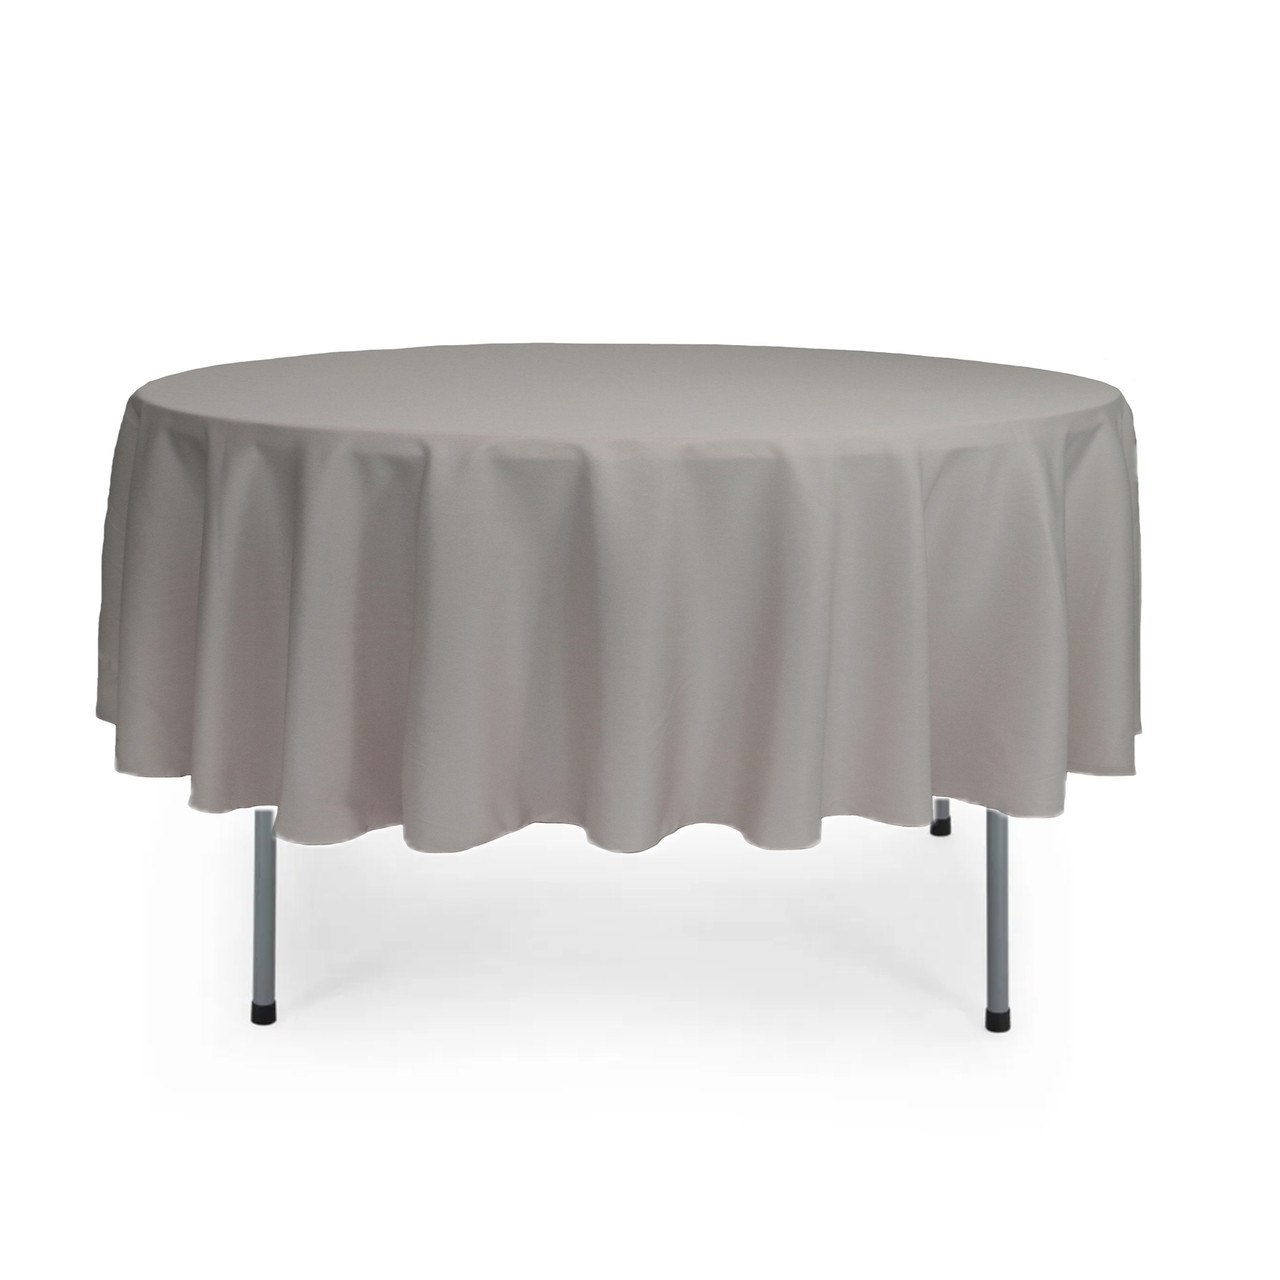 90 Inch Round Polyester Tablecloth Gray Your Chair Covers Inc